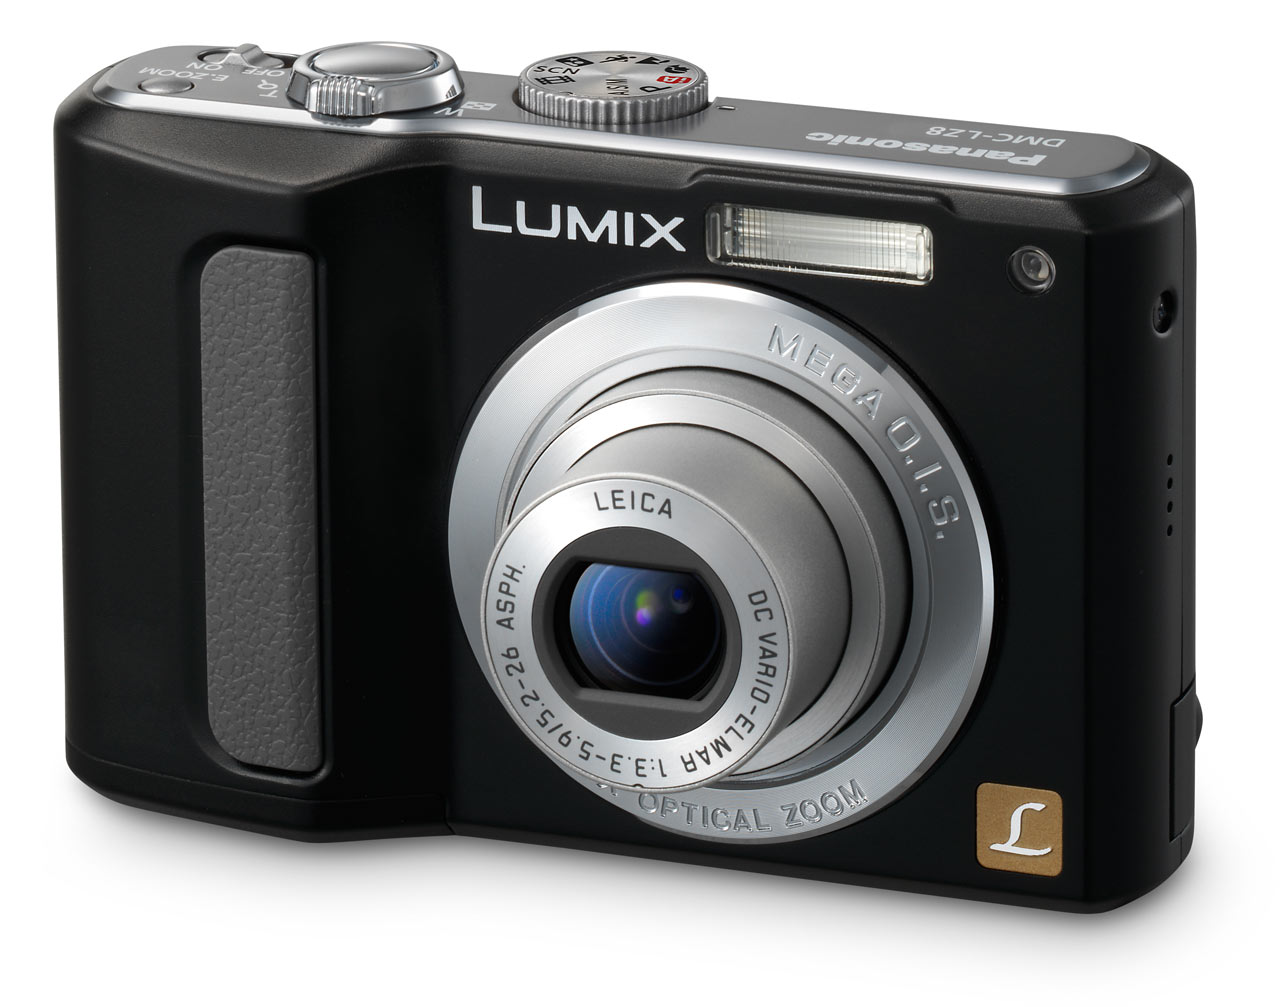 panasonic lumix dmc lz8 lz10 digital photography review rh dpreview com manual de camara panasonic lumix dmc-fz28